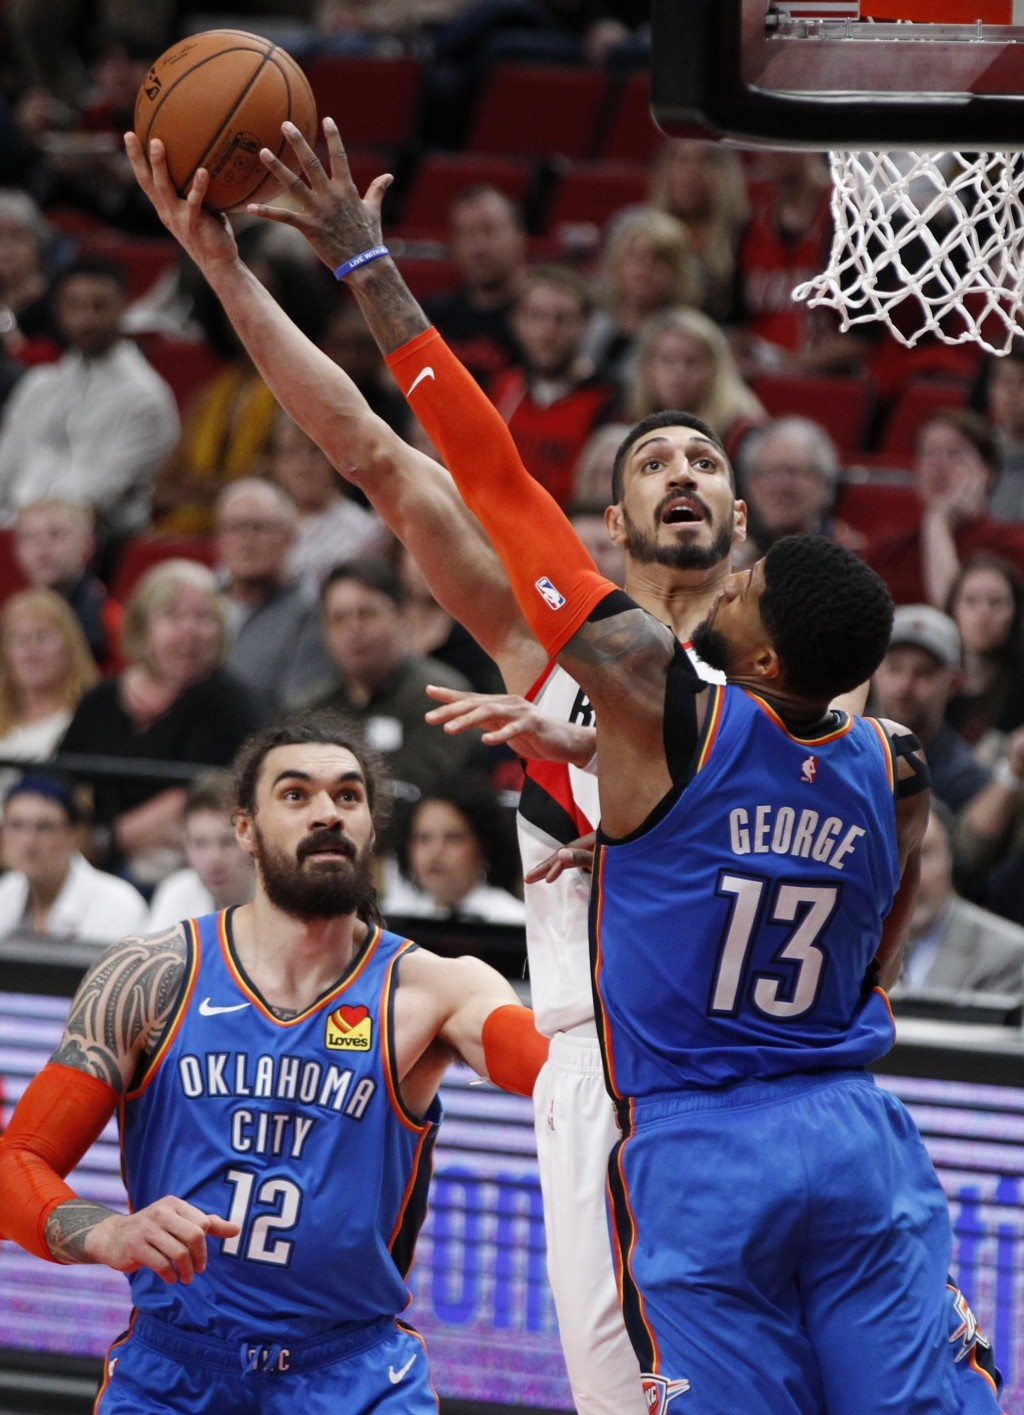 Portland Trail Blazers center Enes Kanter, center, shoots as Oklahoma City Thunder center Steven Adams, left, and forward Paul George, right, defend d